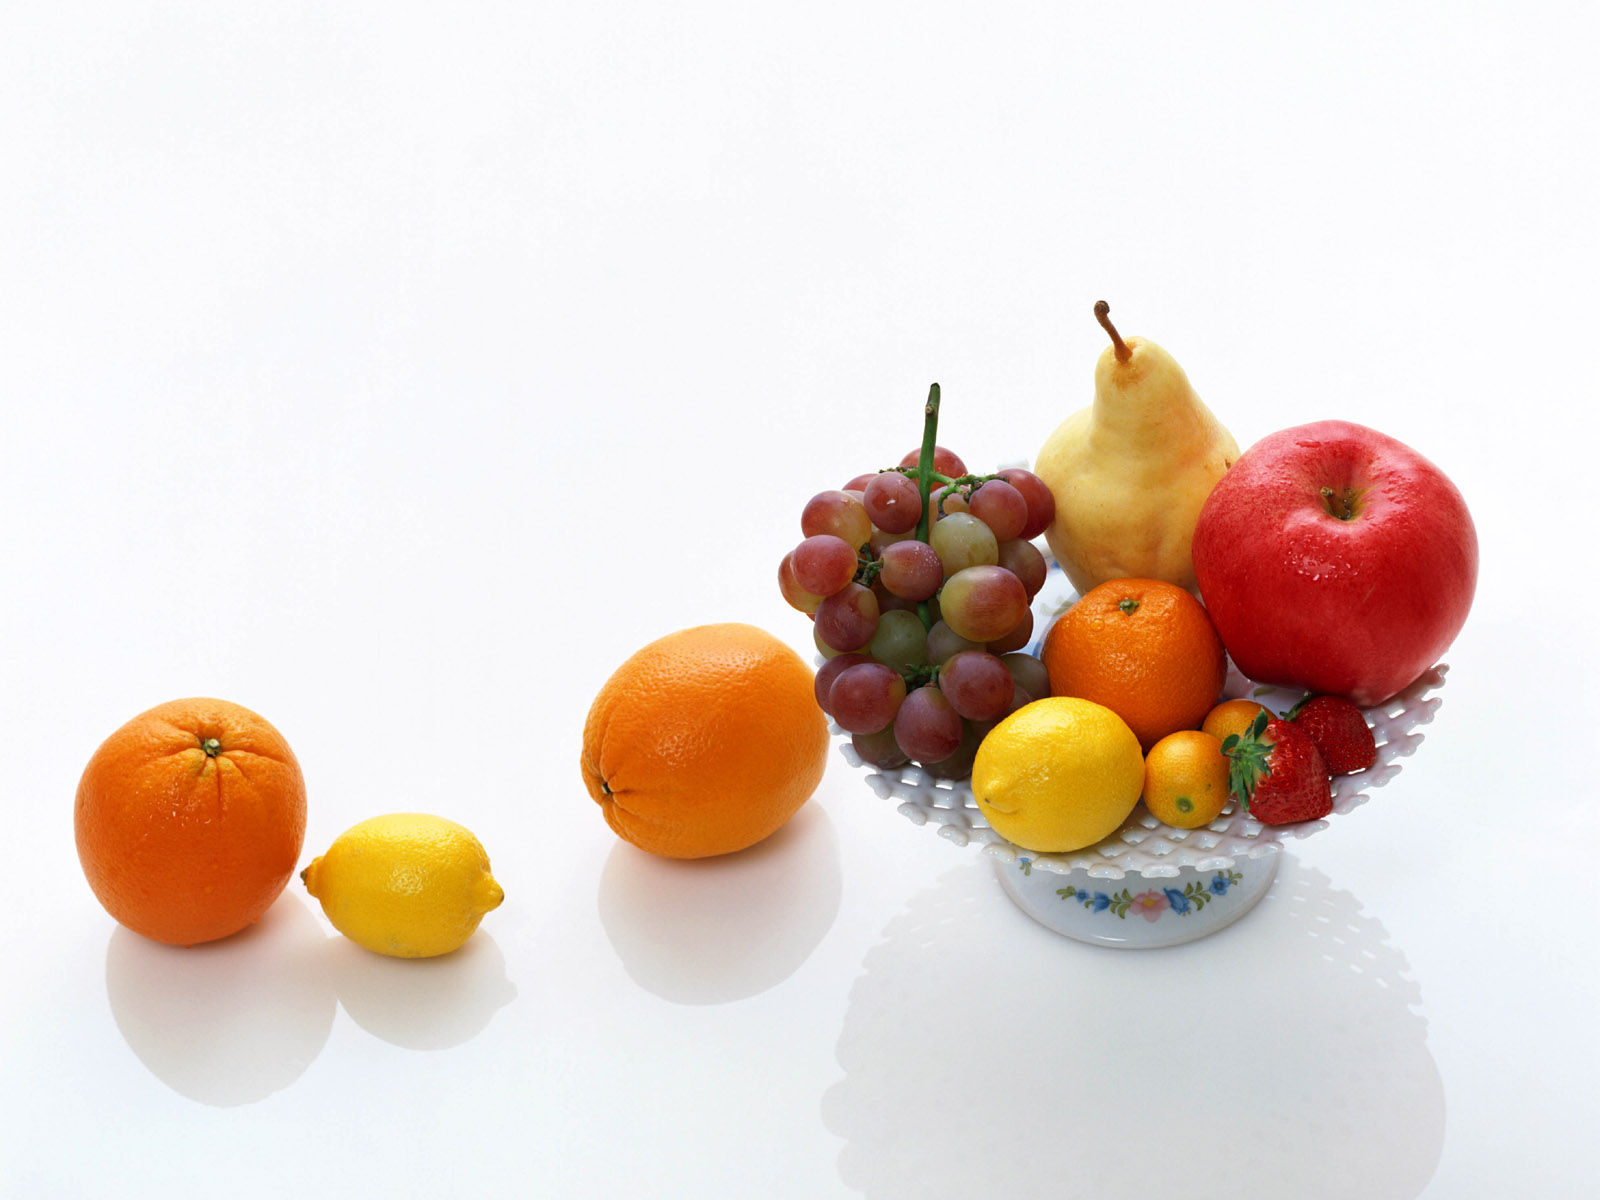 click to free download the wallpaper--Beautiful Fruits Image, Various Fresh Fruits in a White Plate, Can't Hold Them All 1600X1200 free wallpaper download